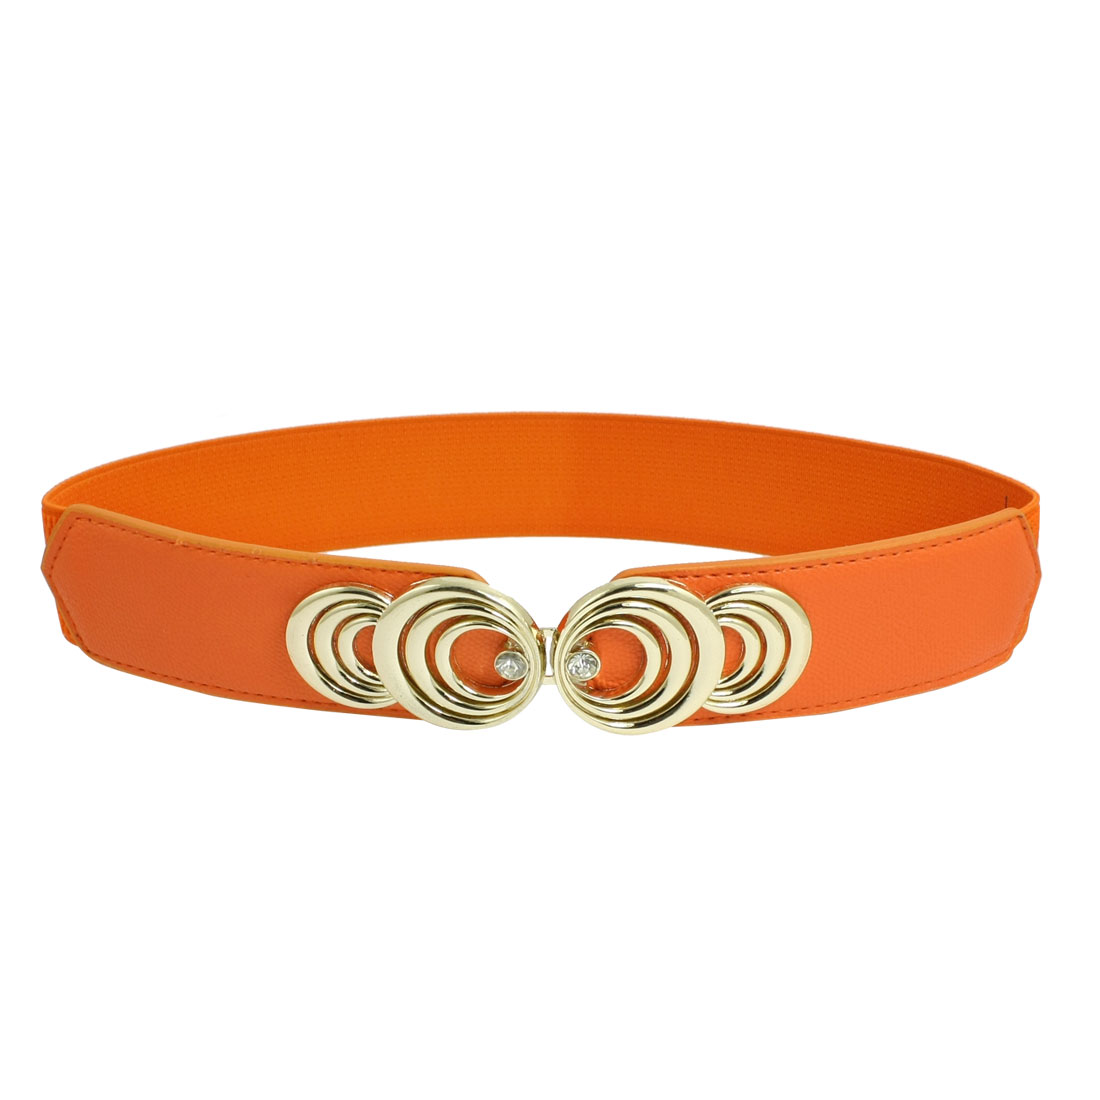 Women 3.8cm Wide Metal Interlock Buckle Stretch Cinch Waist Belt Orange